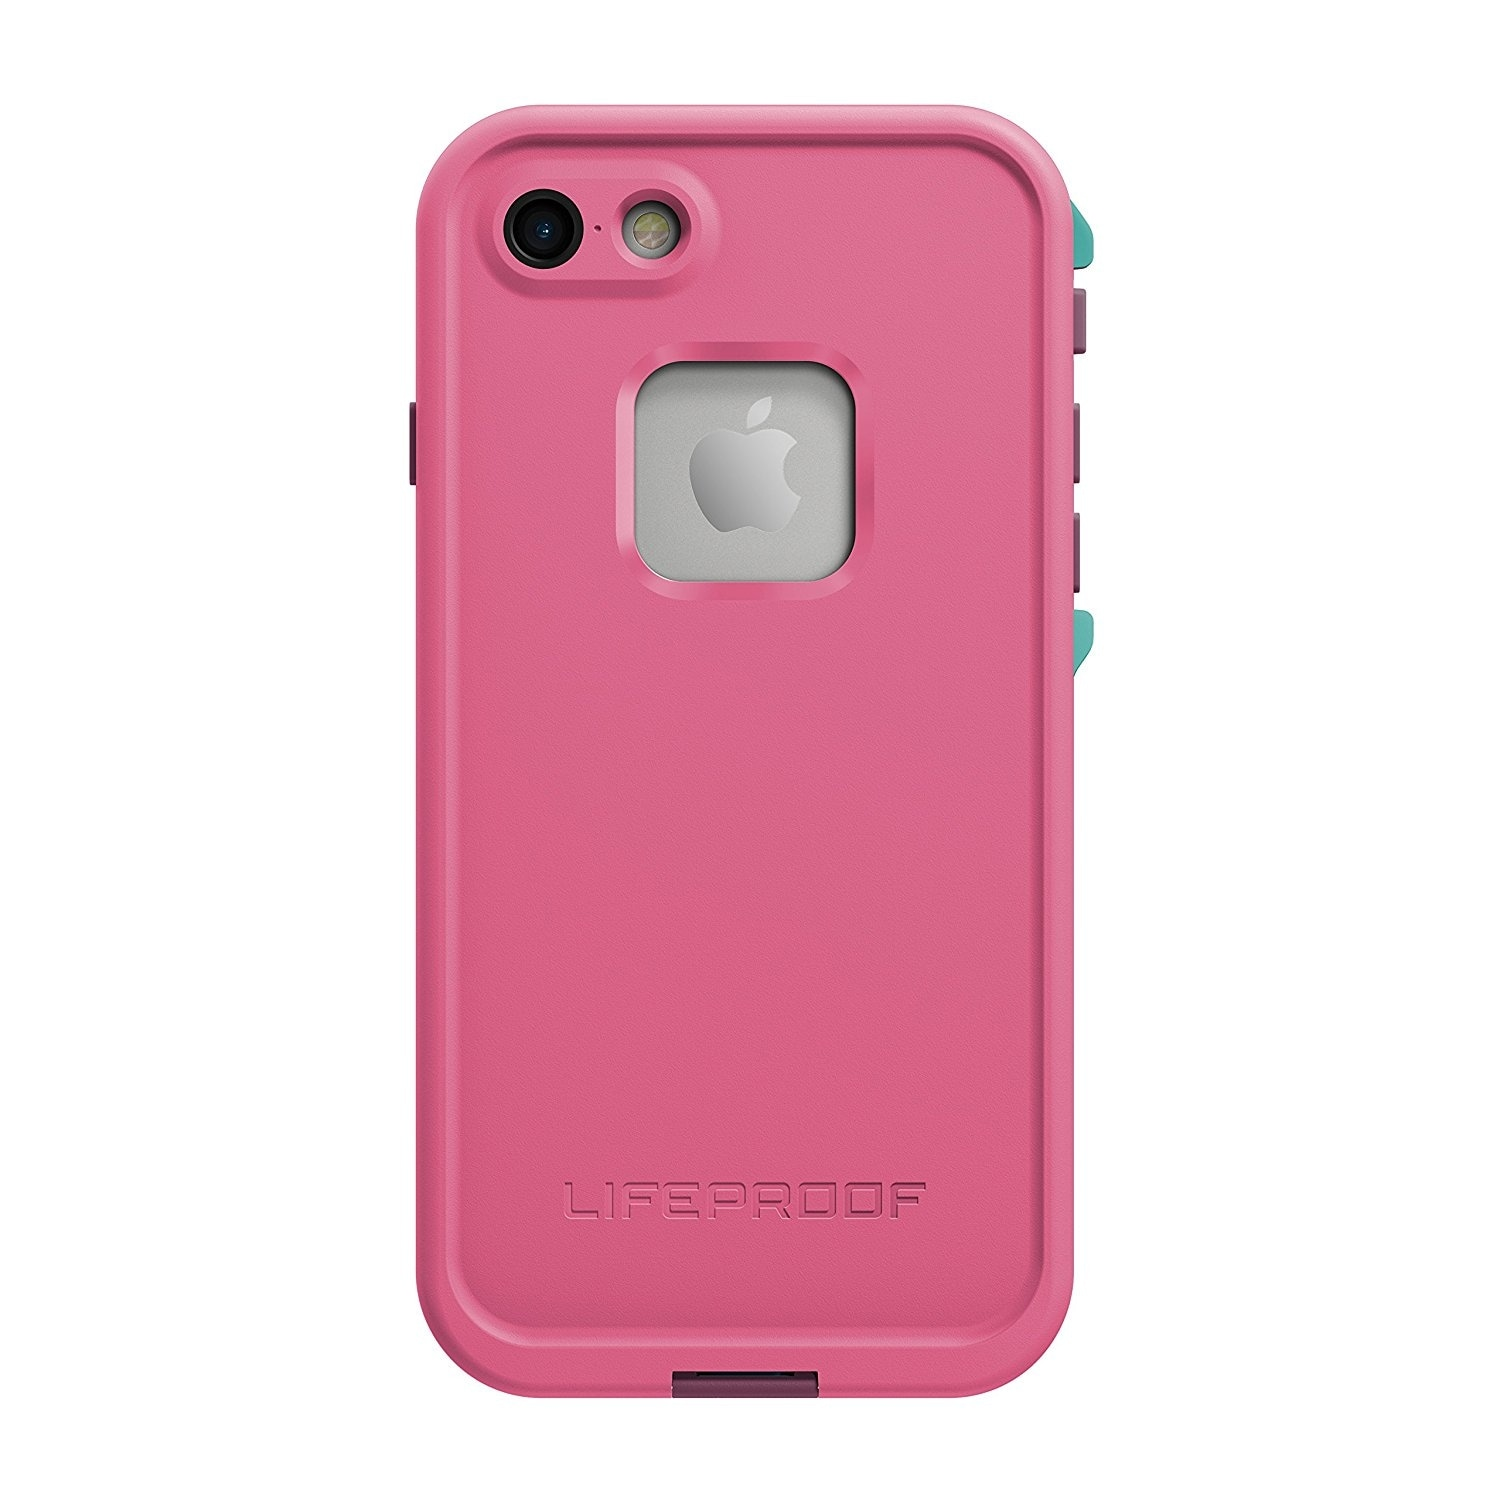 reputable site c8b9c 058f2 Buy Lifeproof Cell Phone Cases Online at Overstock   Our Best Cell ...